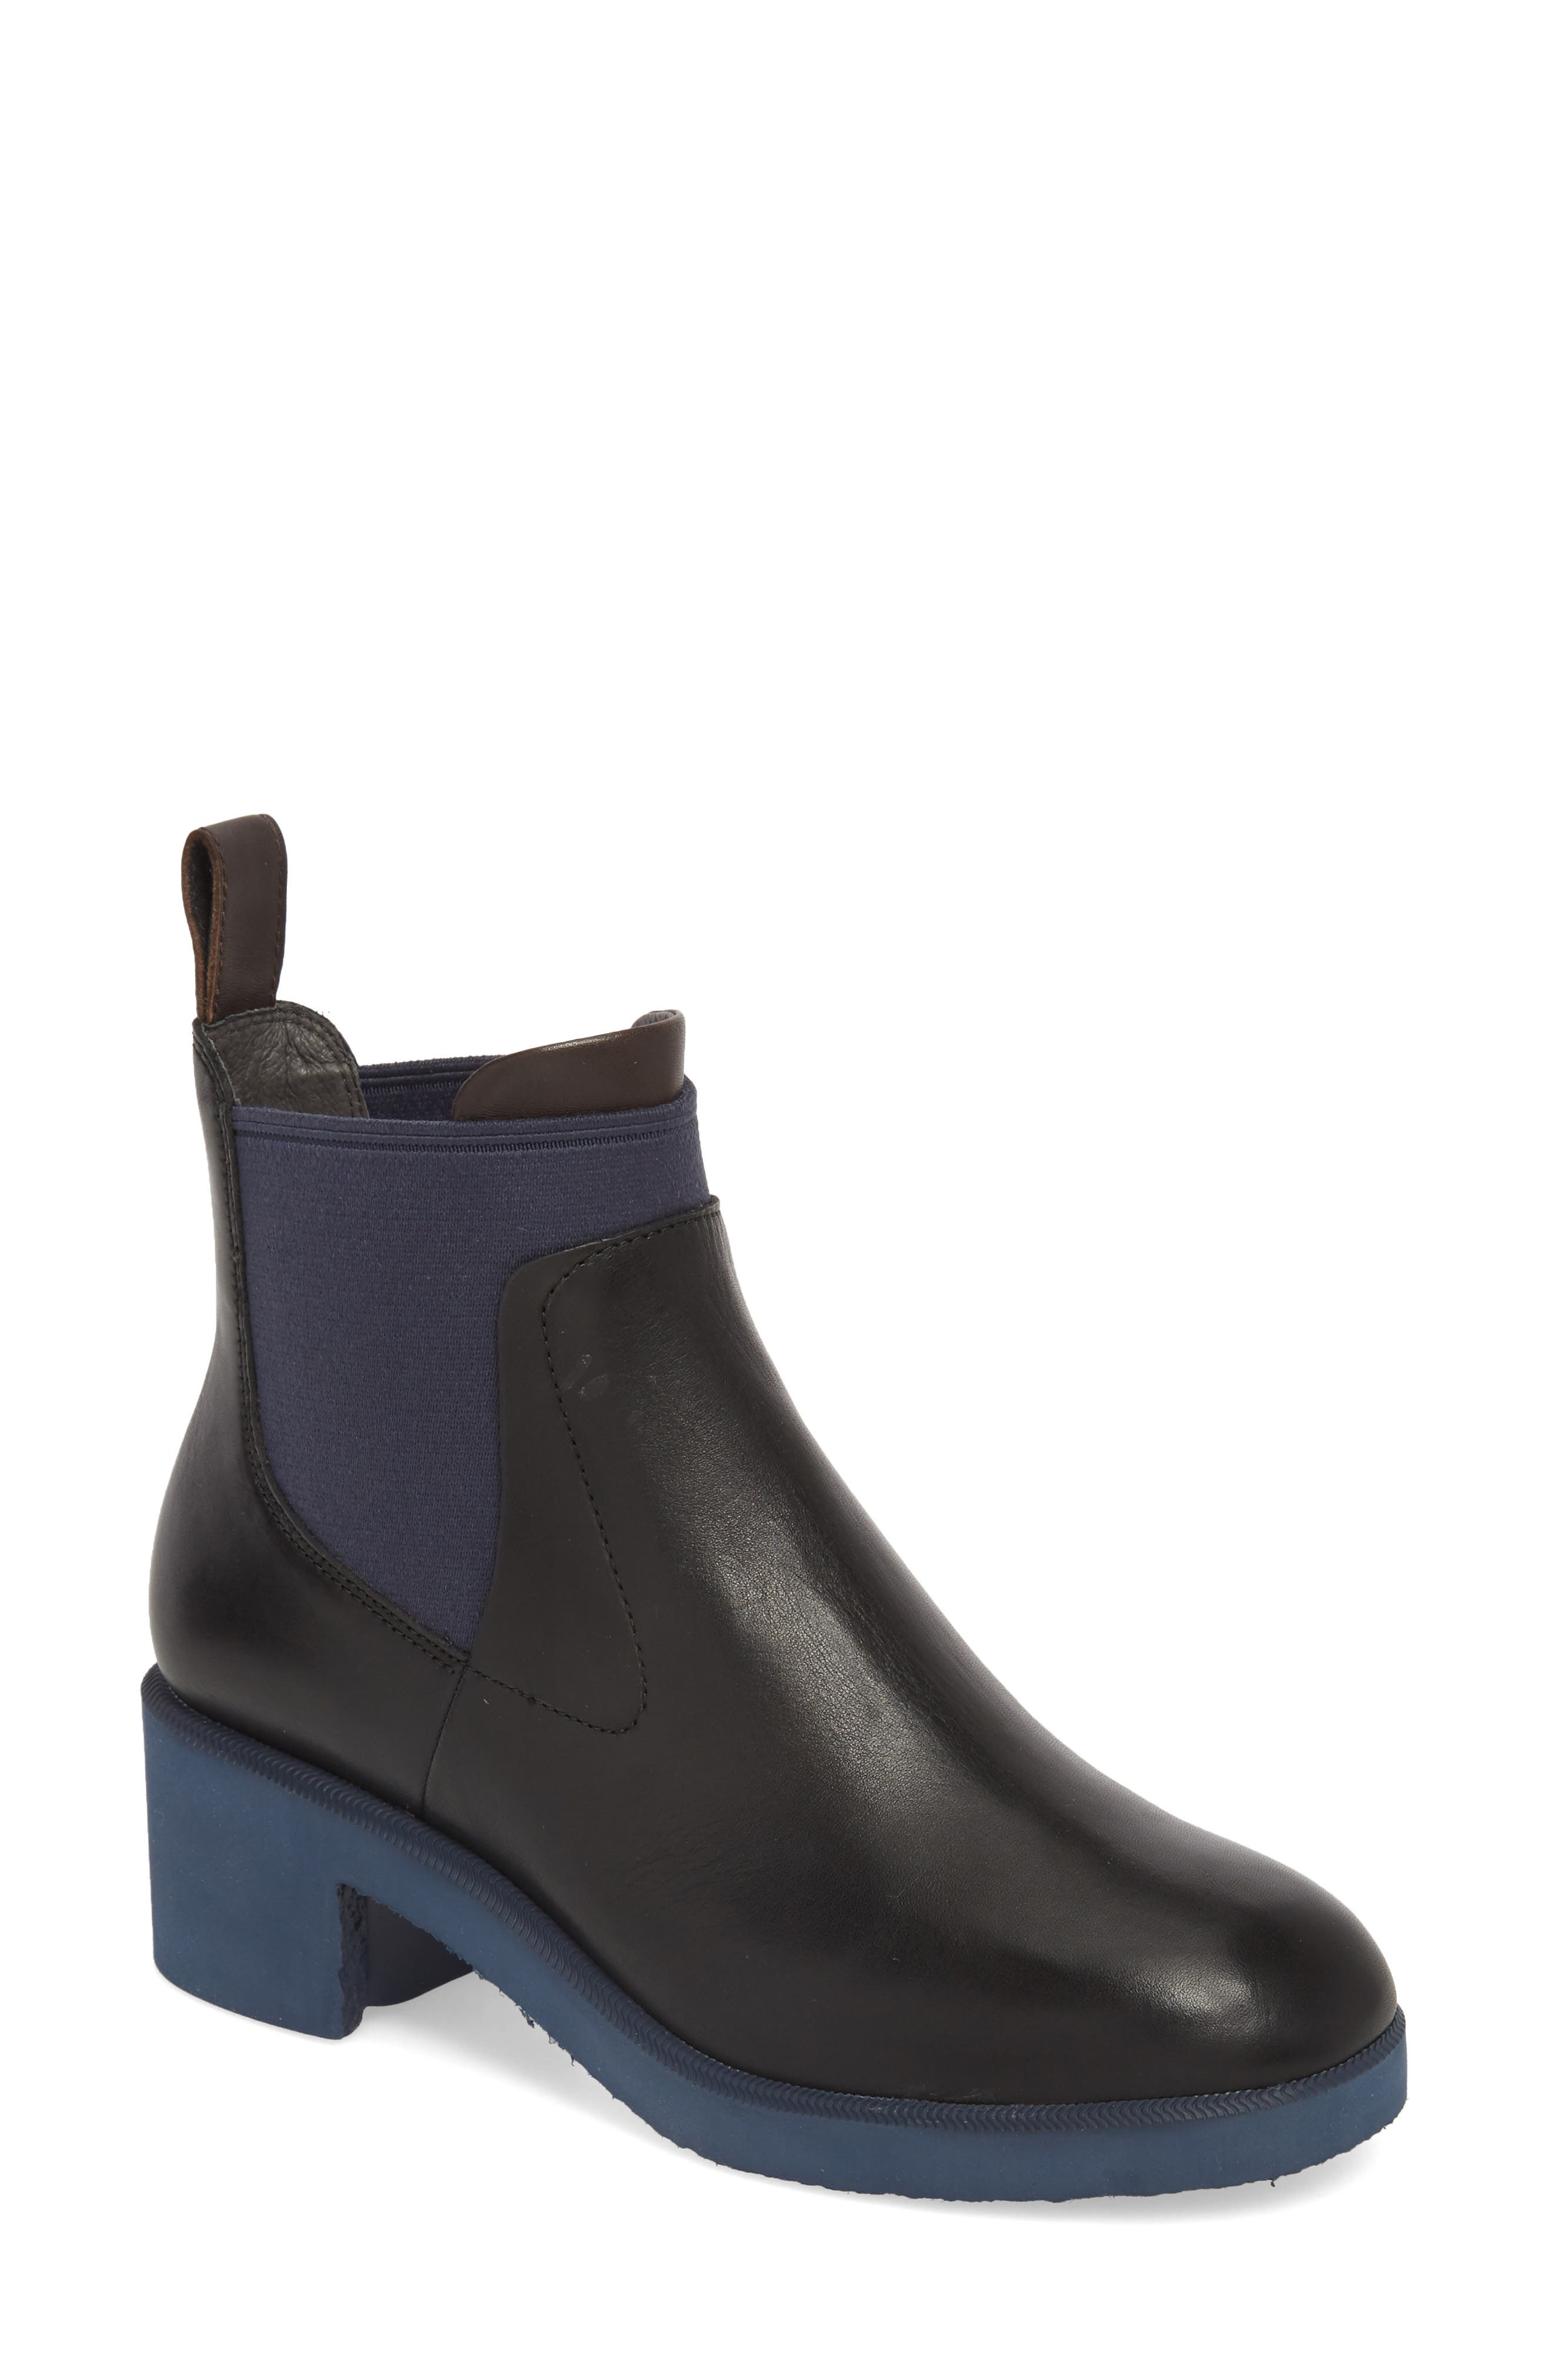 Whitnee Bootie,                             Main thumbnail 1, color,                             BLACK LEATHER/ NAVY